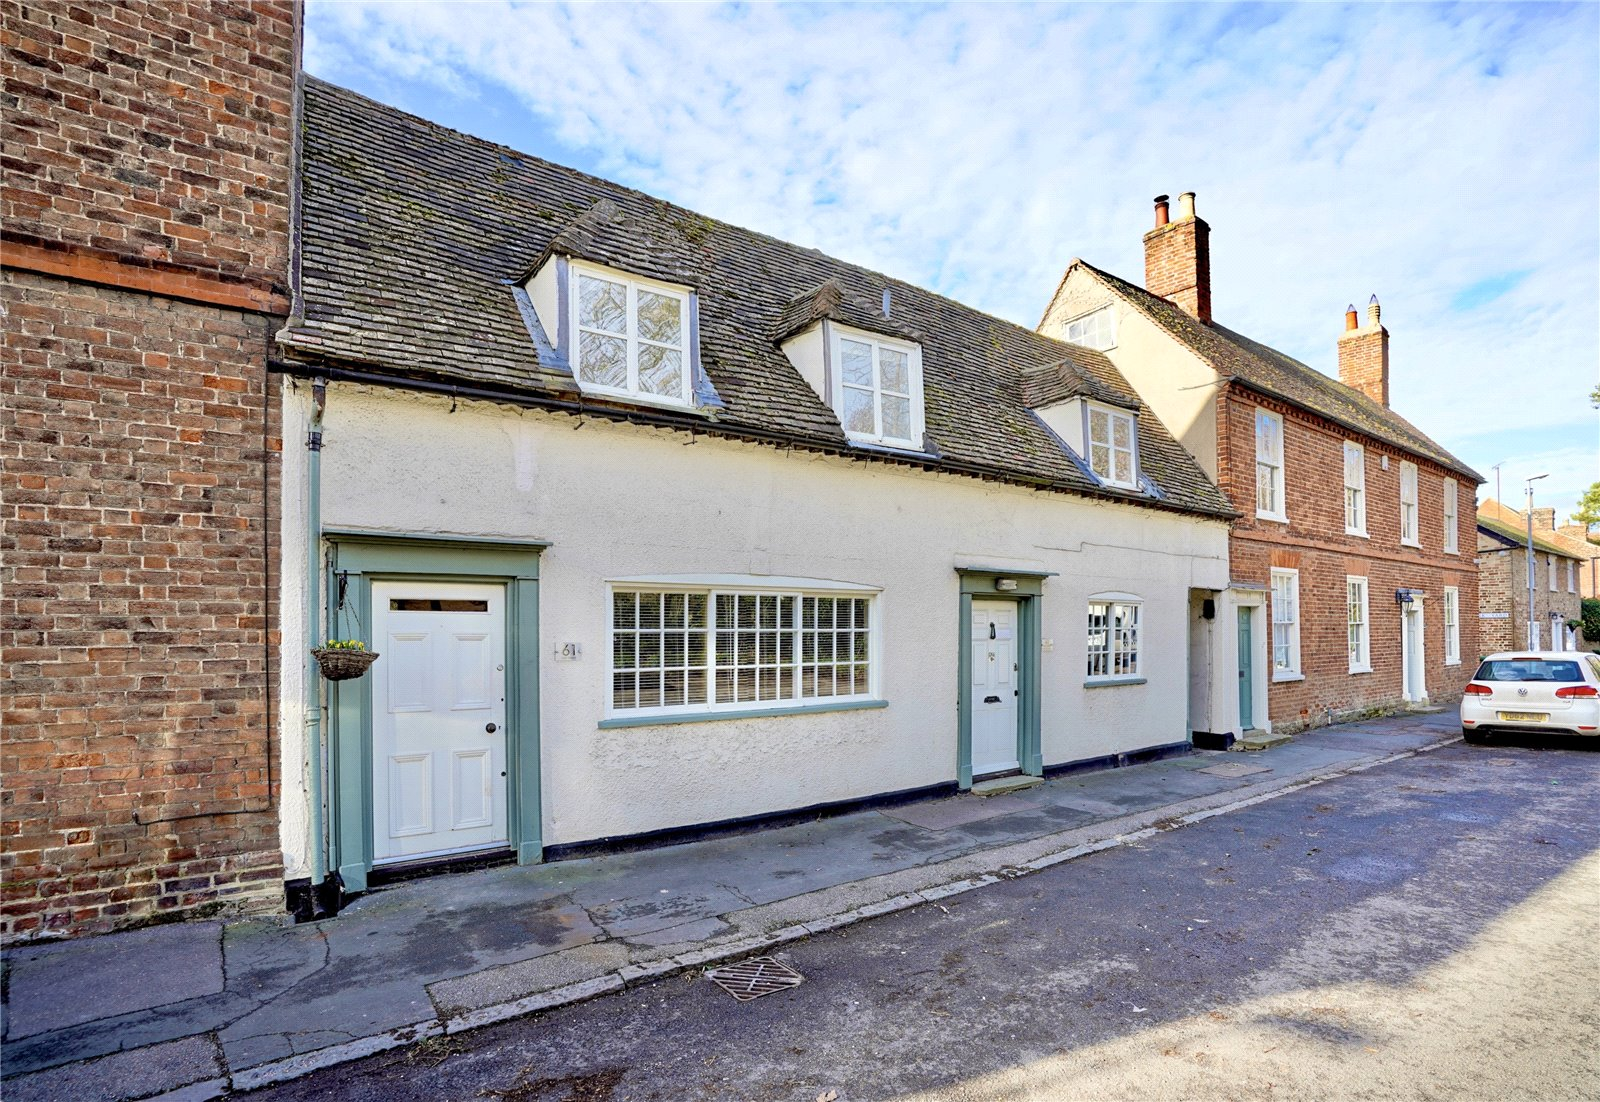 3 bed house for sale in Buckden, High Street, PE19 5TA  - Property Image 1